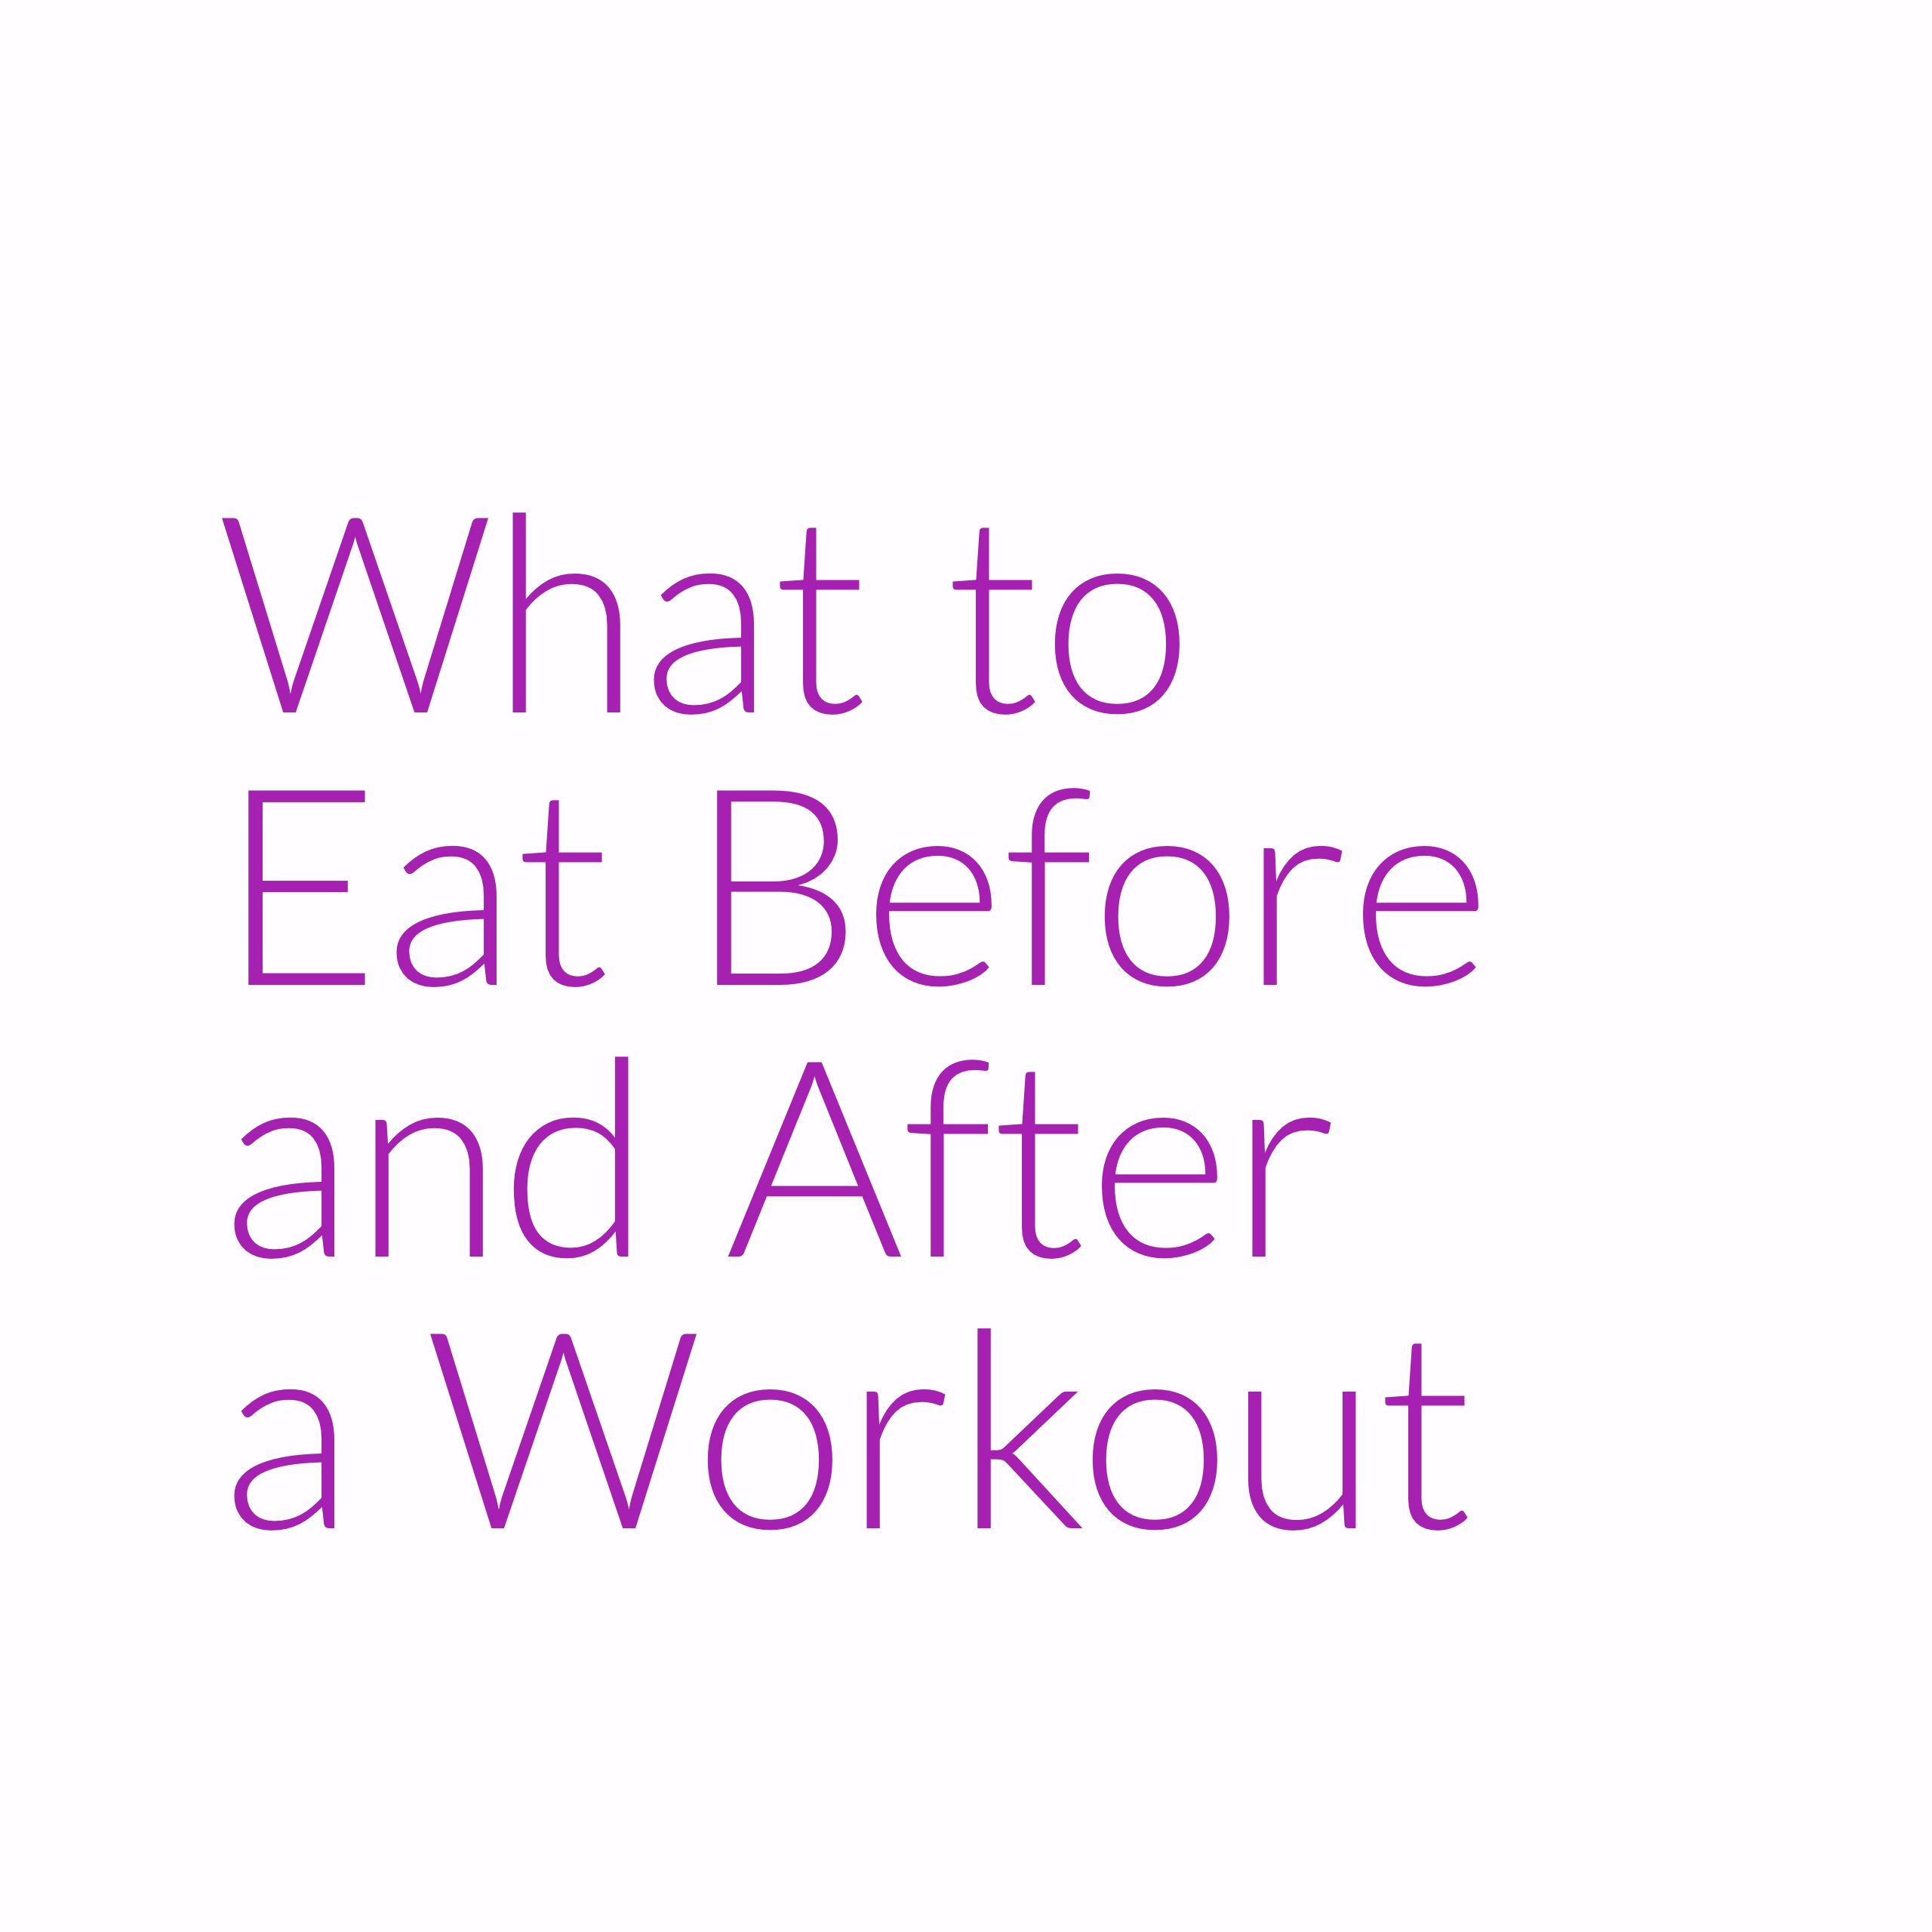 What to Eat Before After Workout